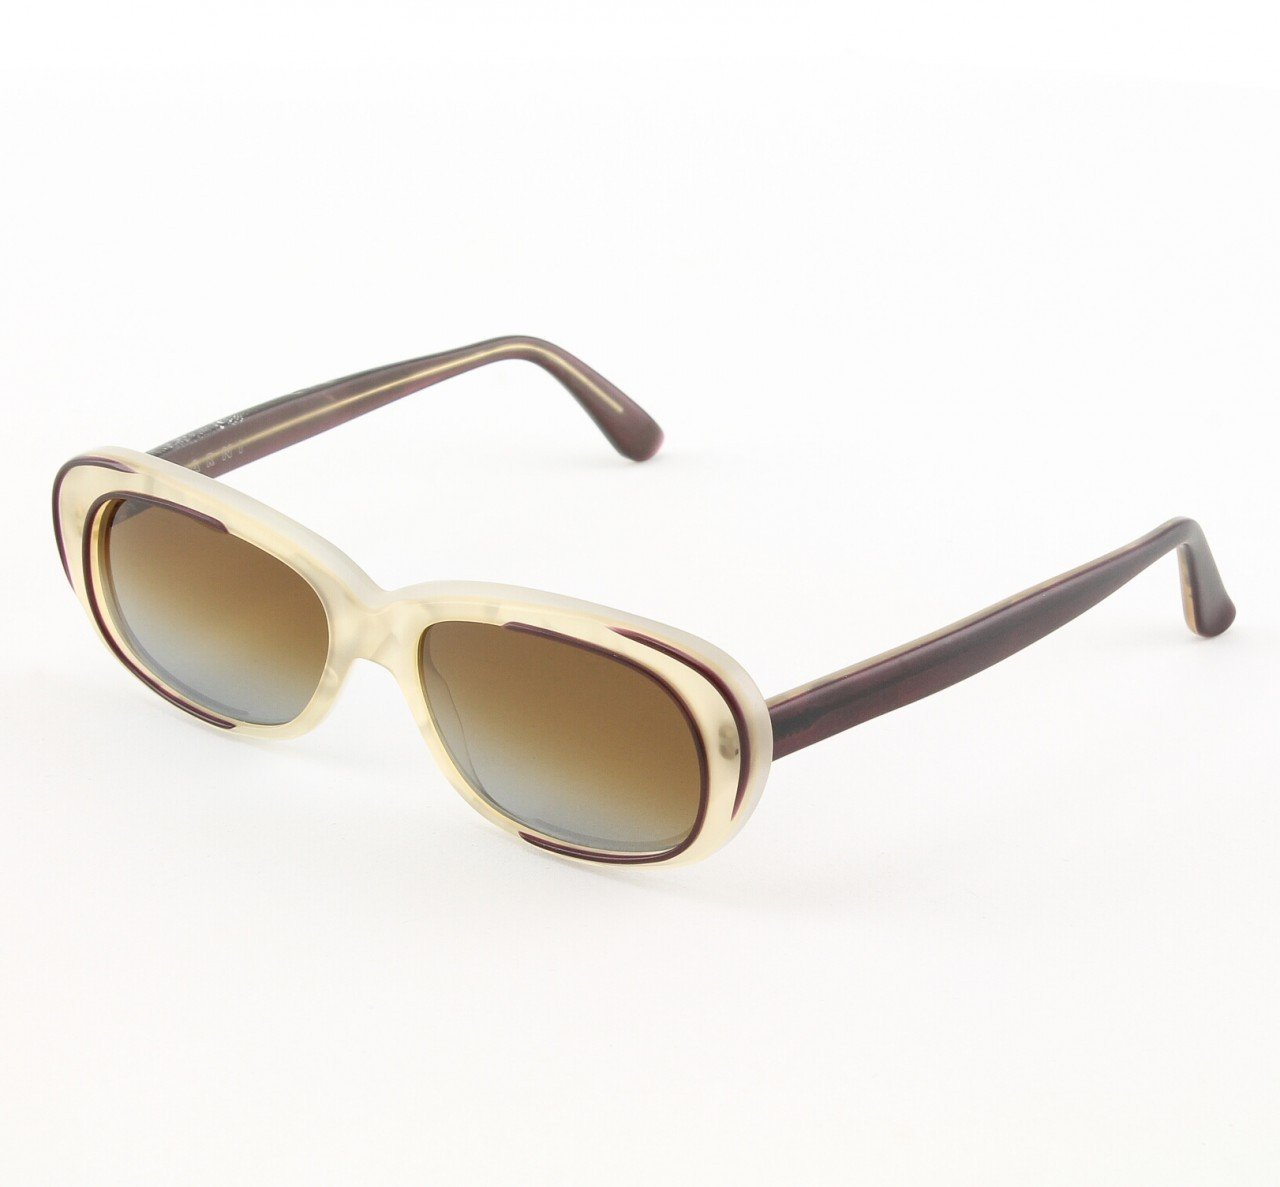 Marni MA174S Sunglasses Col. 03 Translucent Cream w/ Burgundy Accents with Gray Gradient Lenses